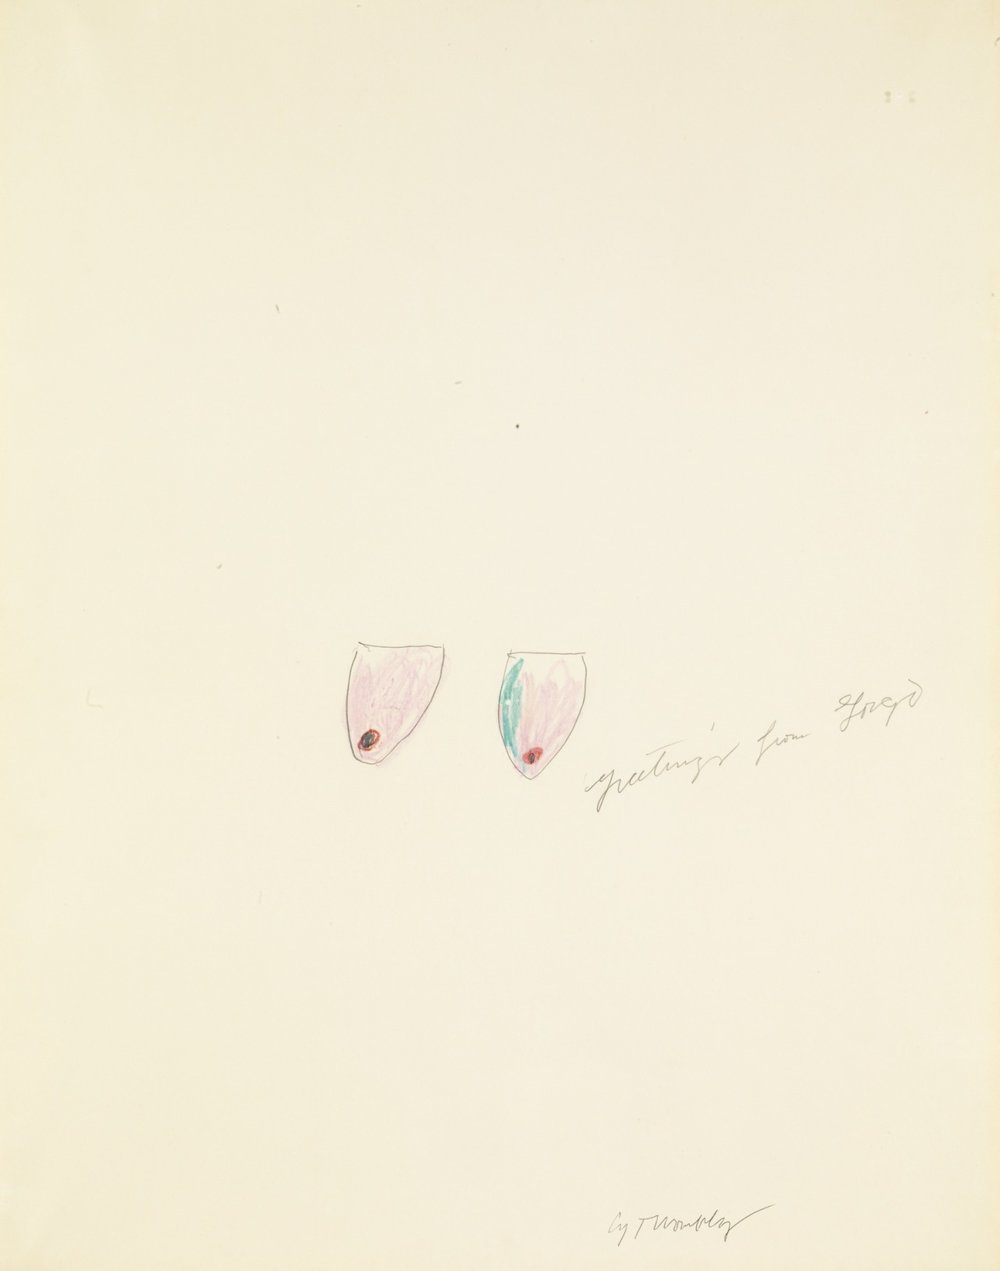 bodegathirteen_monday_mood_cytwombly_sketch.jpg